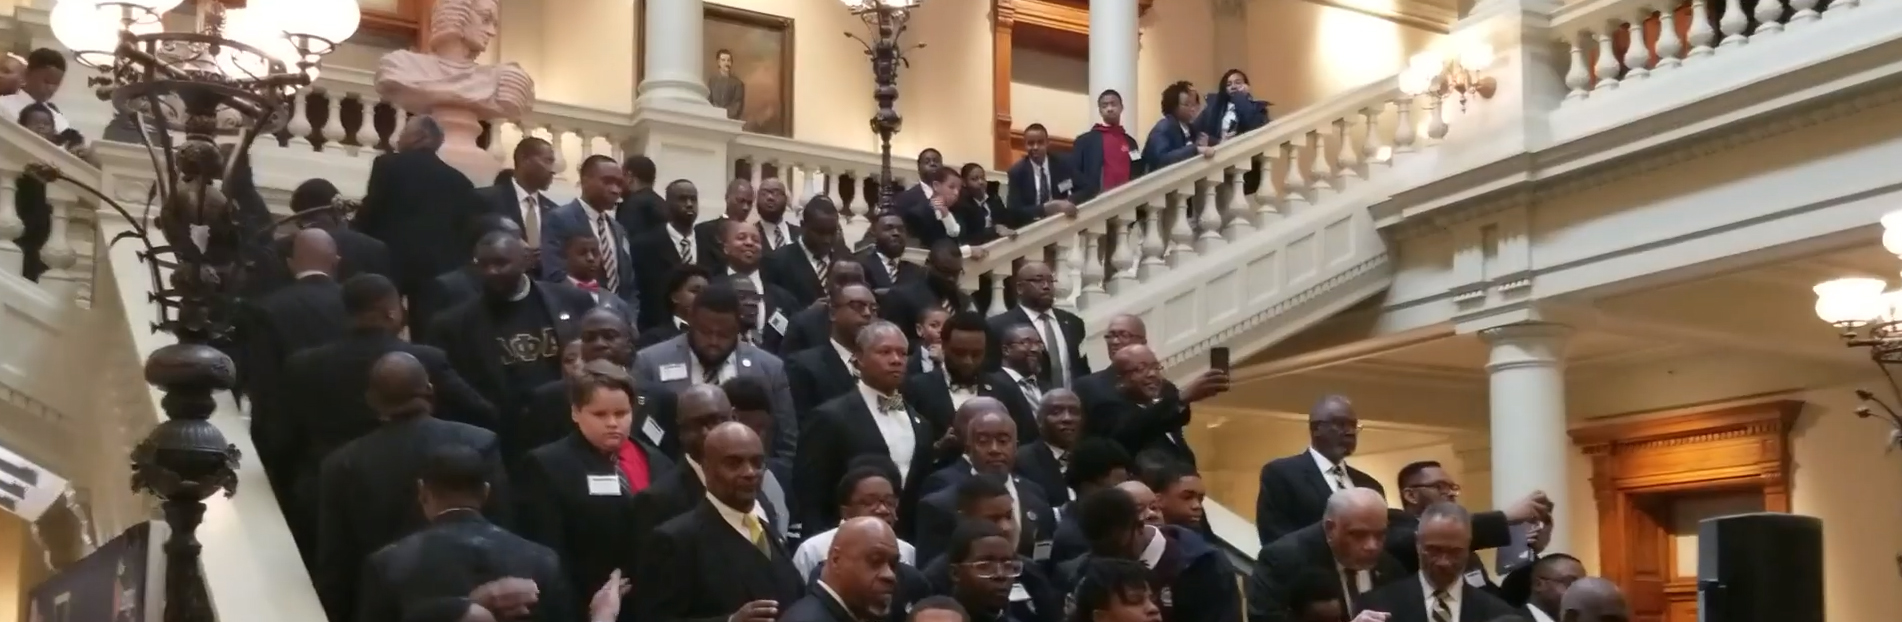 Alpha Day at the Capitol 2019